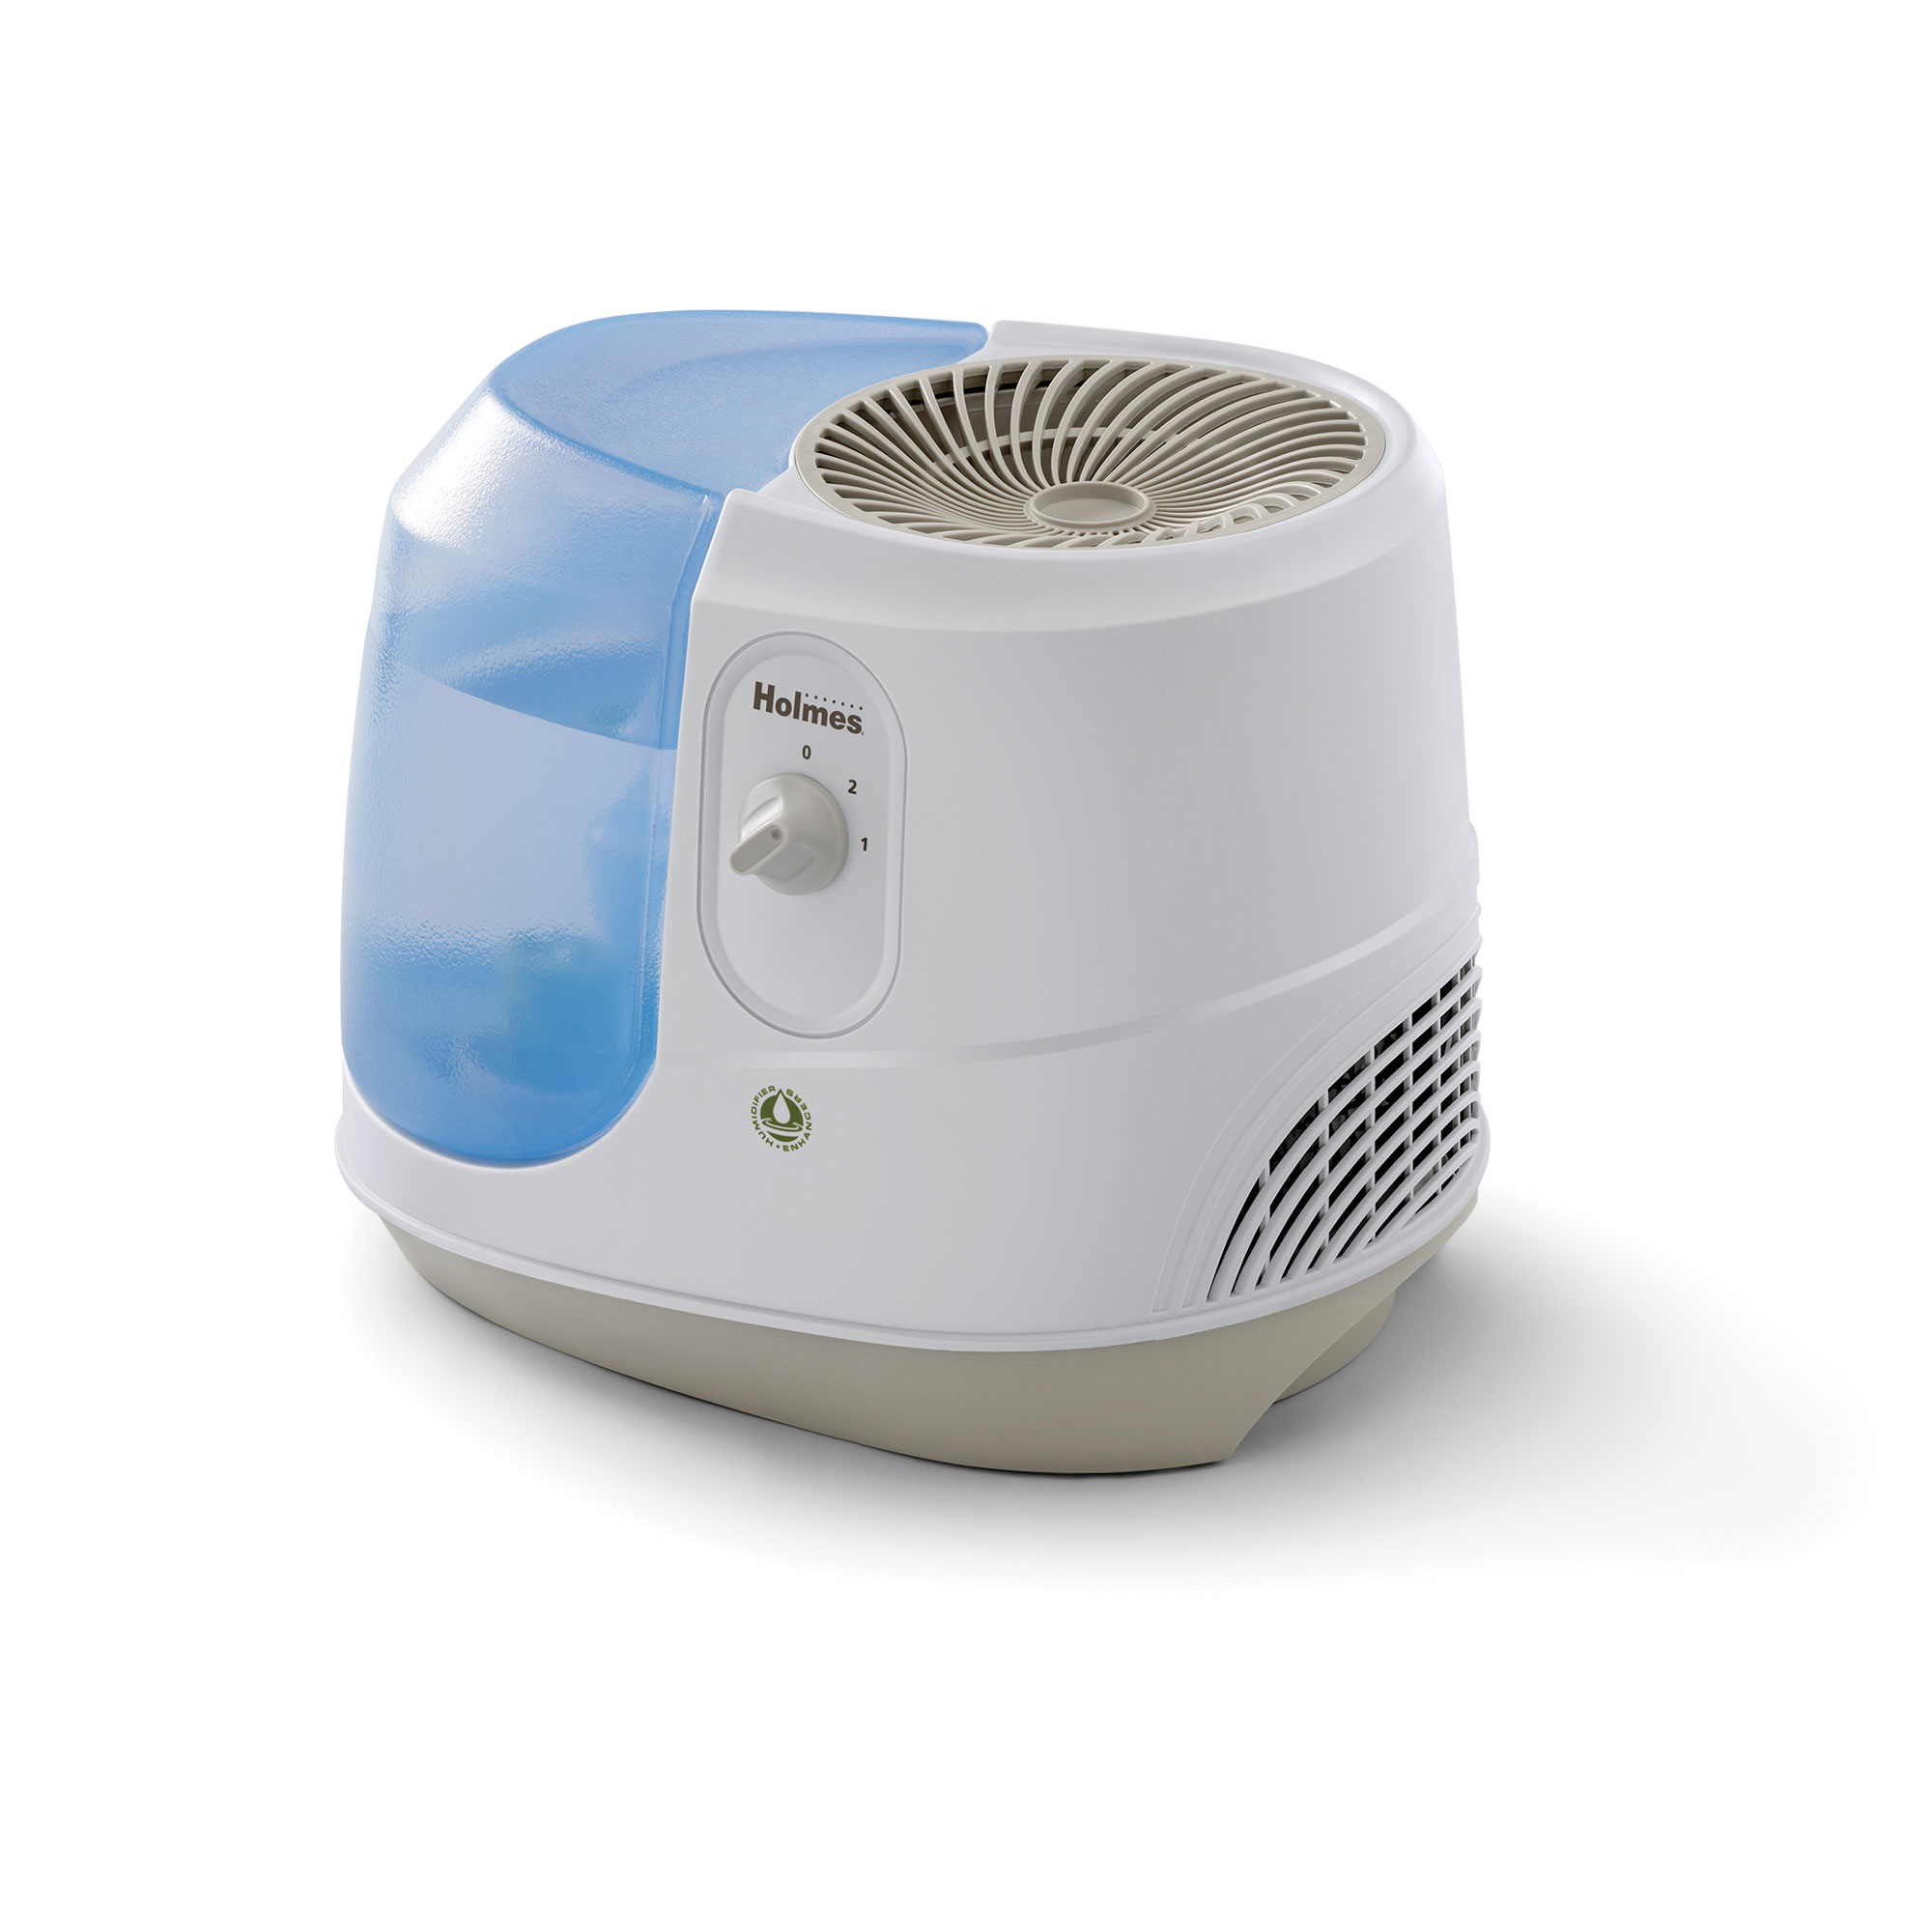 Holmes Cool Mist Humidifier For Small Rooms White Walmart Com Walmart Com